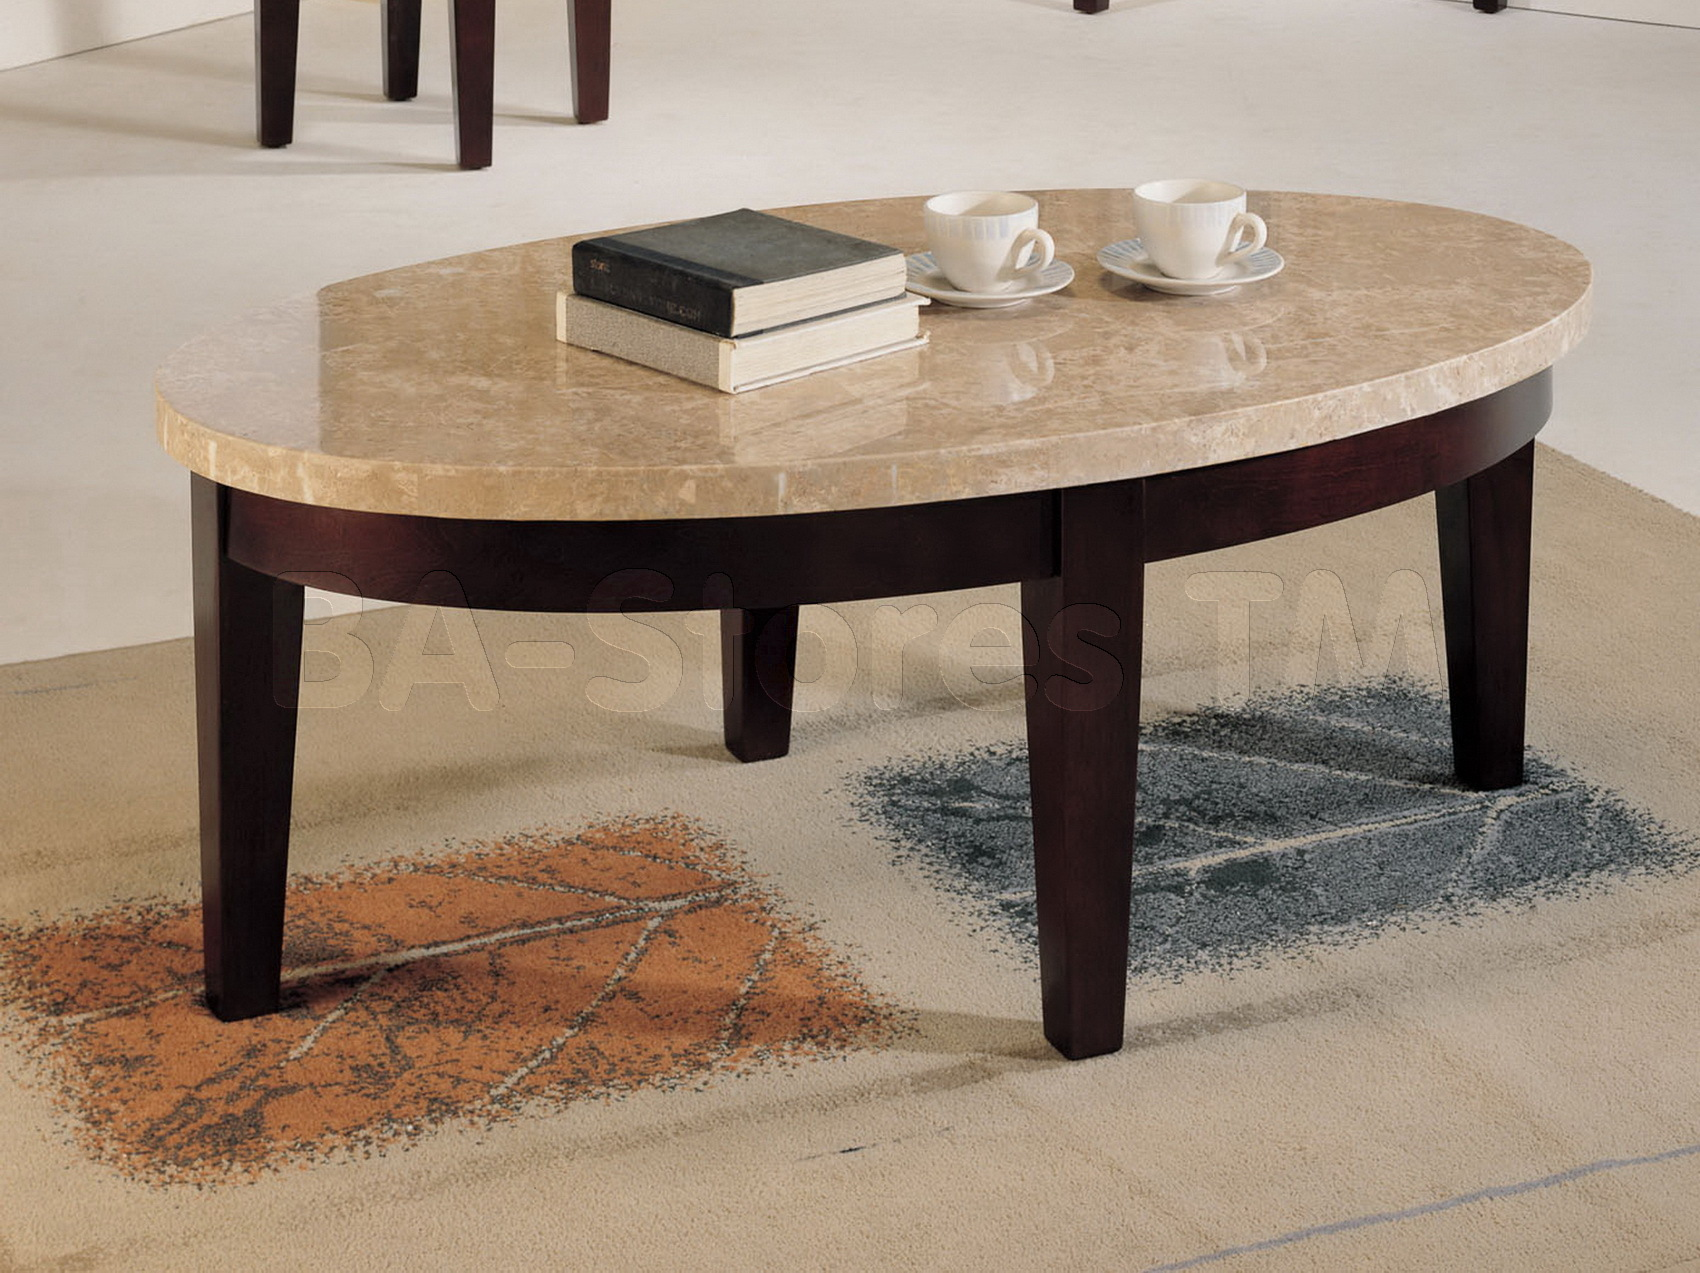 marble coffee table design photo - 8